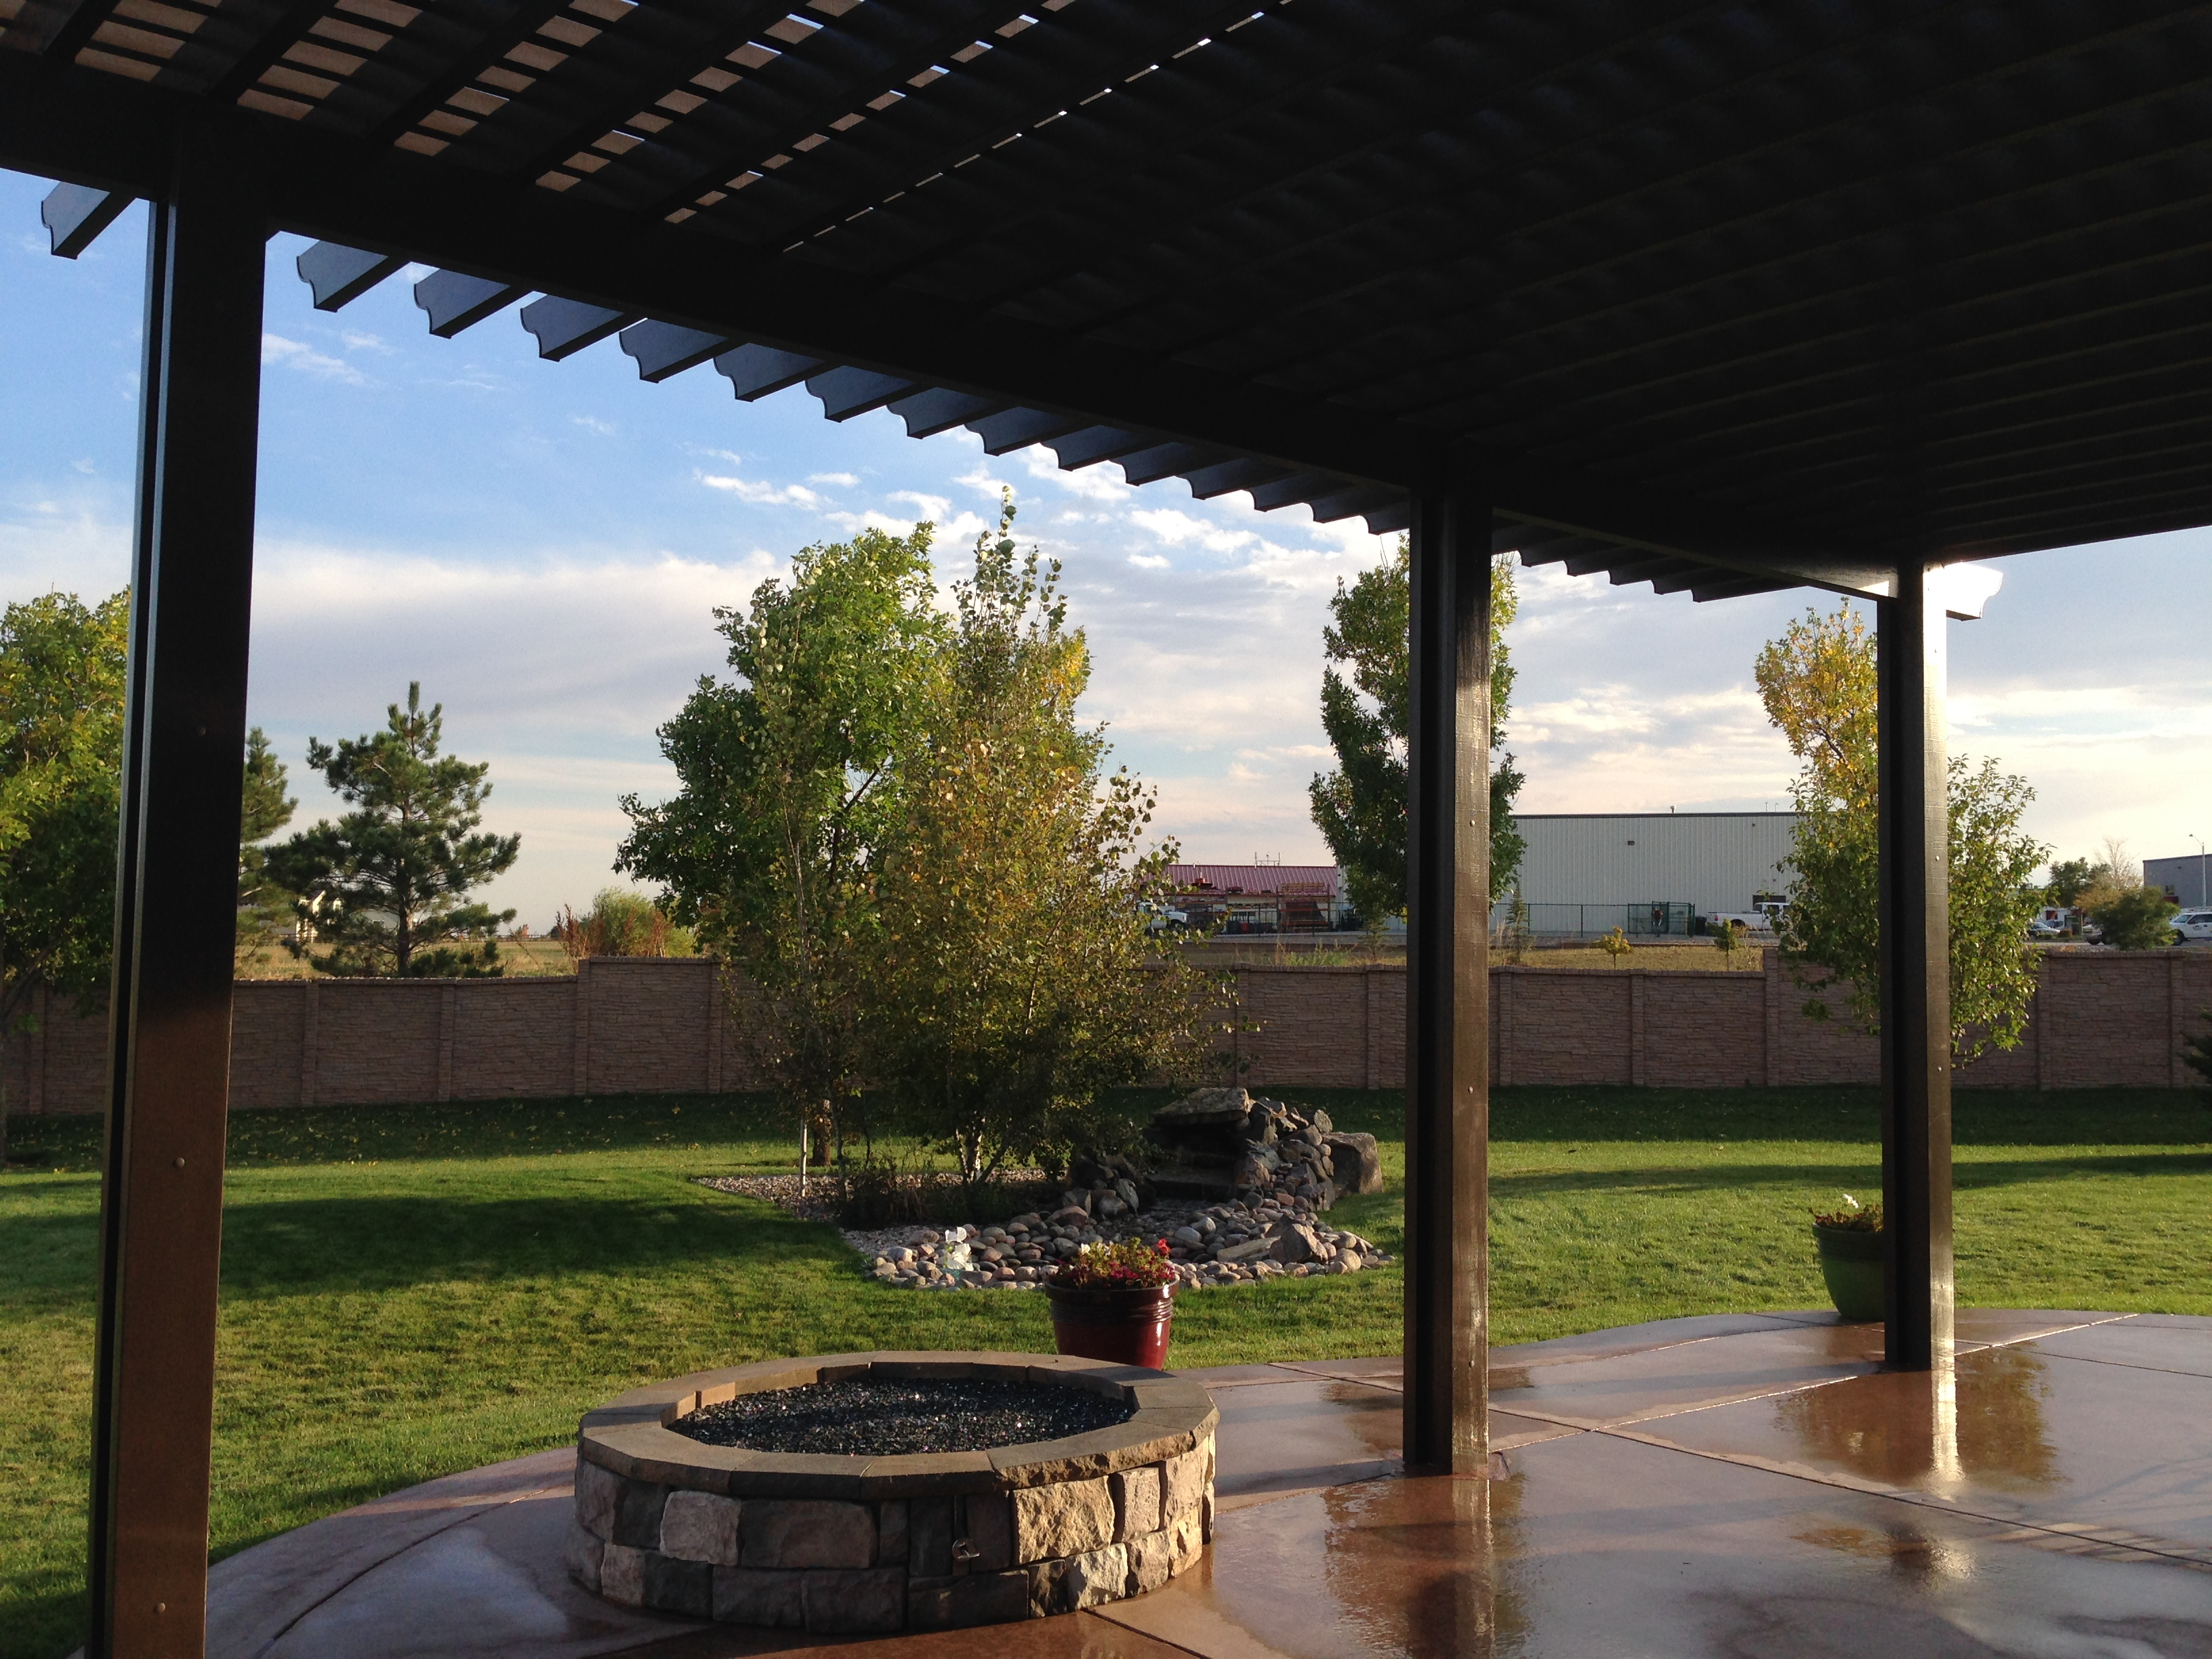 This Attached Aluminum Pergola Was Built Over An Existing Concrete Patio  And Offers Incredible Shade That Will Last A Lifetime. The Posts Are  Reinforced ...